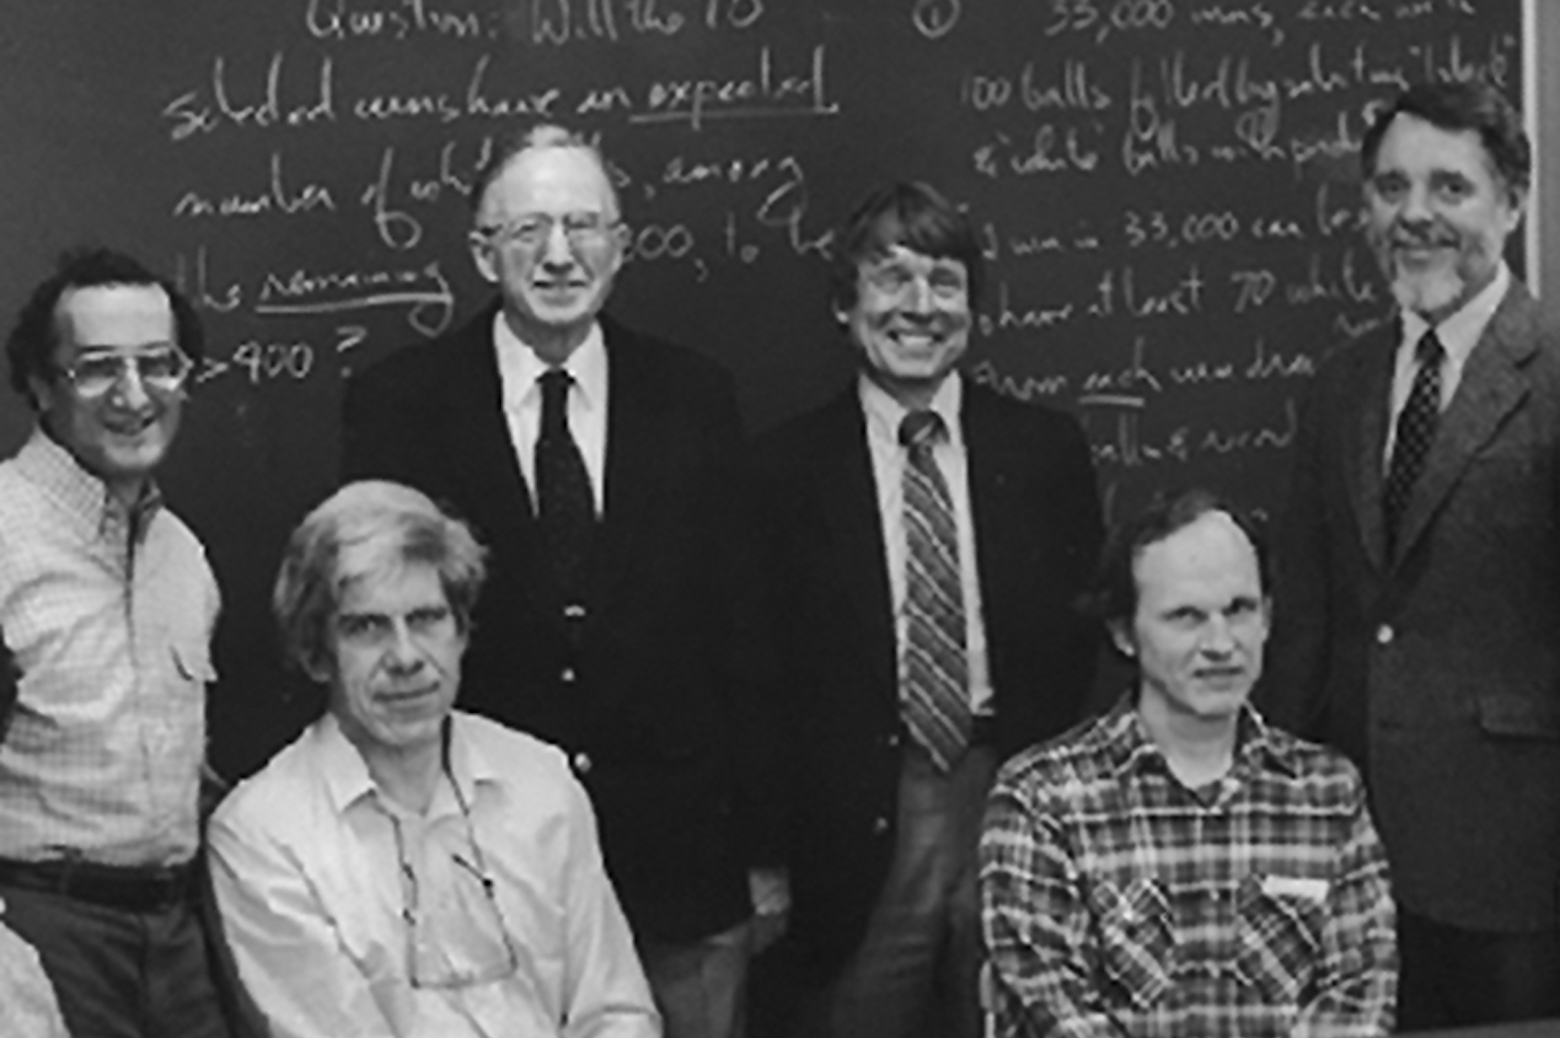 Group picture of the founding researchers as the Bach Group